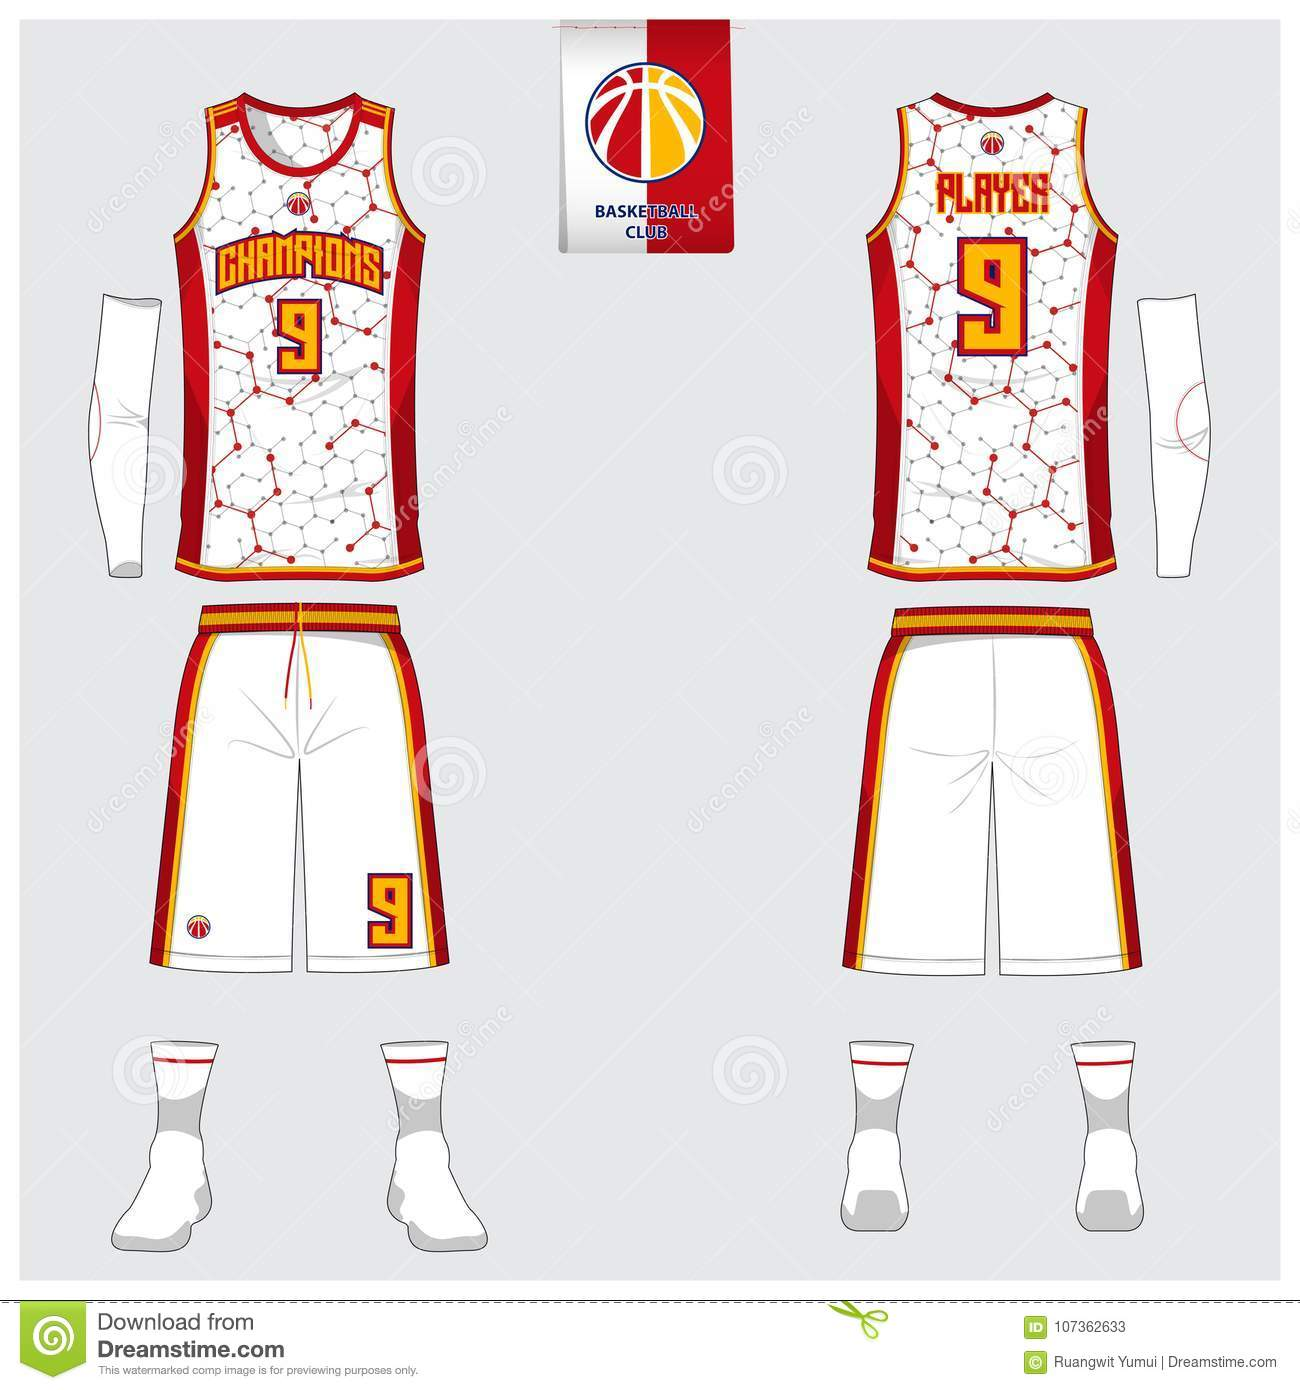 3d7270013d0 Basketball jersey, shorts, socks template for basketball club. Front and  back view sport uniform. Tank top t-shirt mock up. Royalty-Free Illustration